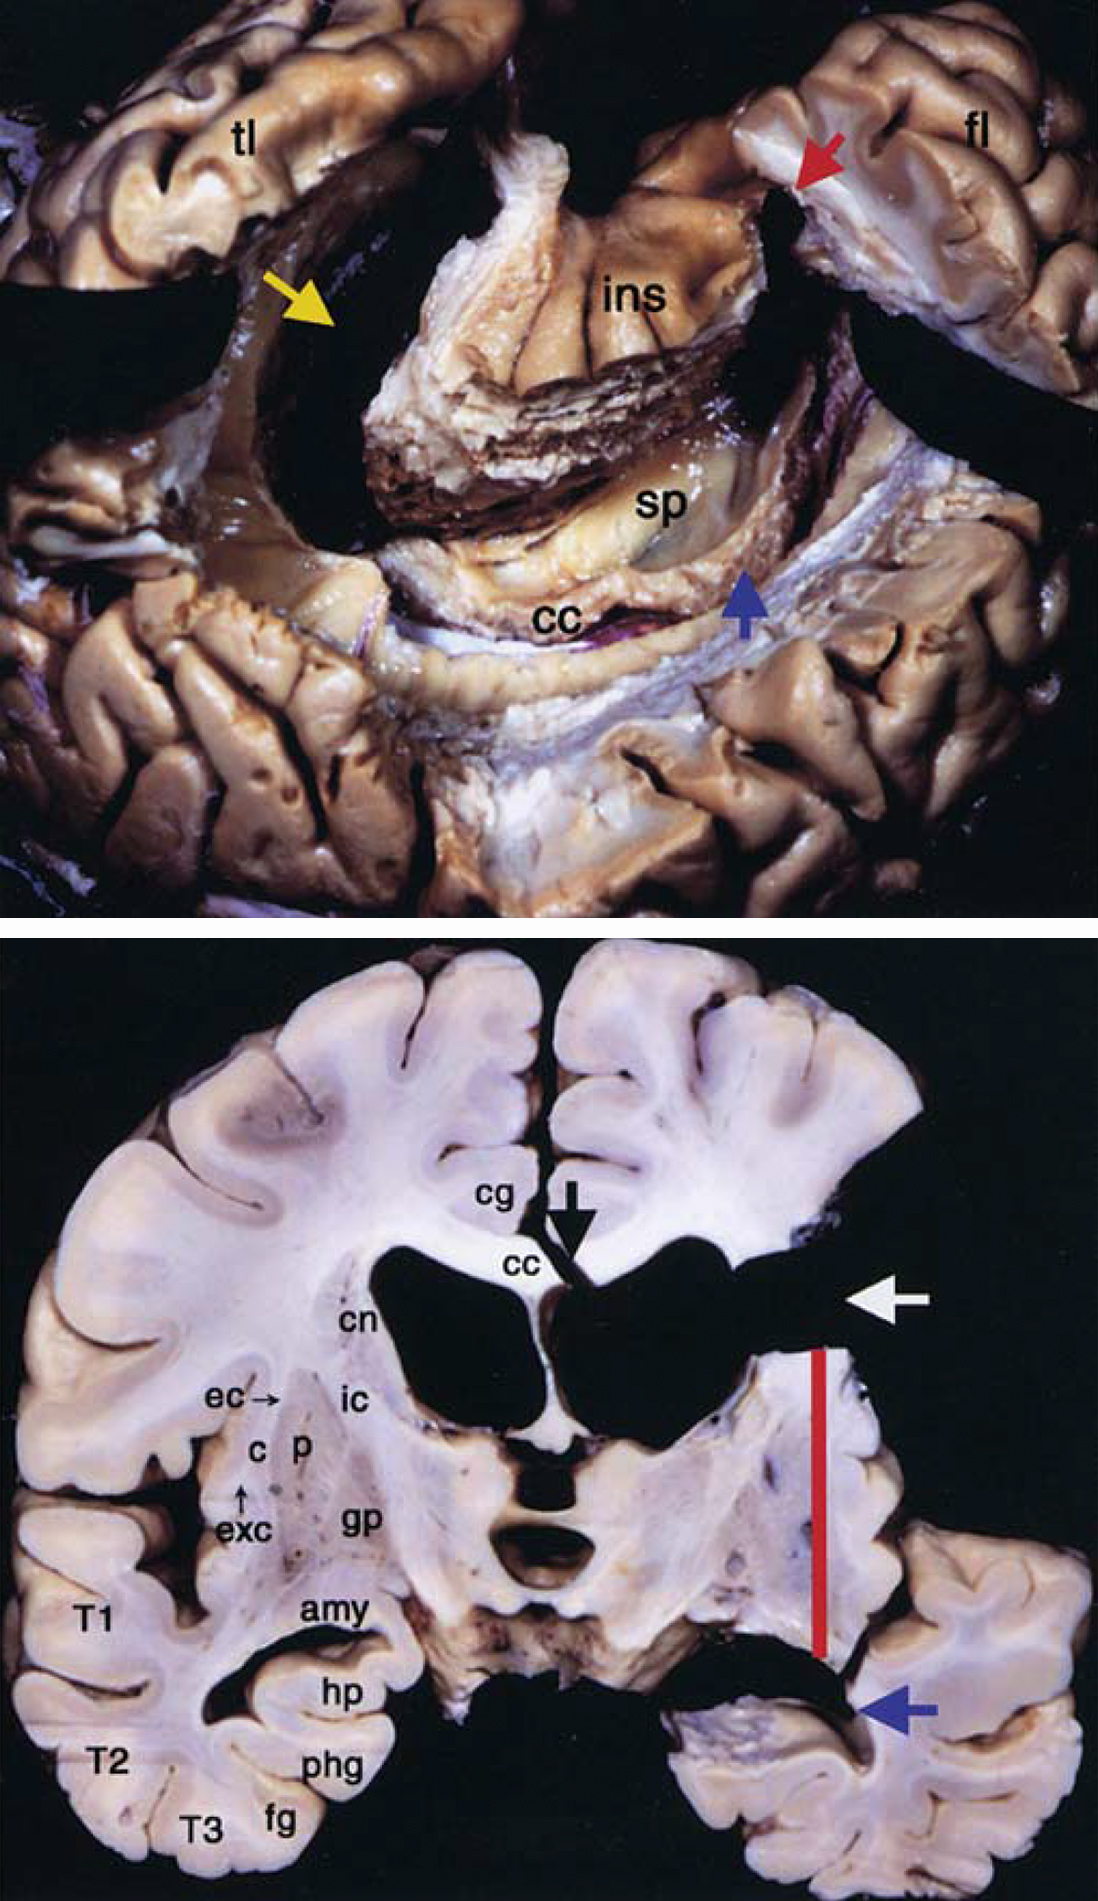 Figure 2: A lateral overview of a C-shaped peri-insular hemispherotomy in shown (top image). The entire lateral ventricle is unroofed. The yellow arrow points at the resection of the medial temporal structures; the blue arrow indicates the transventricular corpus callosotomy; and the red arrow marks the disruption of the horizontal frontal fibers. A coronal view of a hemispherotomy is also included (bottom photo). The white arrow shows the area corresponding to the interruption of the internal capsule from the operculum, whereas the black arrow indicates the transventricular corpus callosotomy. The red line indicates the insulectomy, and the blue arrow indicates the interruption of the temporal stem and resection of the medial temporal structures. c = claustrum; cc = corpus callosum; cg = cingulate gyrus; cn = caudate nucleus; ec = external capsule; fg = fusiform gyrus; phg = parahippocampal gyrus; T1 = superior temporal gyrus; T2 = middle temporal gyrus; T3 = inferior temporal gyrus (images used with permission from Morino et al. Anatomical analysis of different hemispherotomy procedures based on dissection of cadaveric brains.  J Neurosurg . 2002;97:423-431).